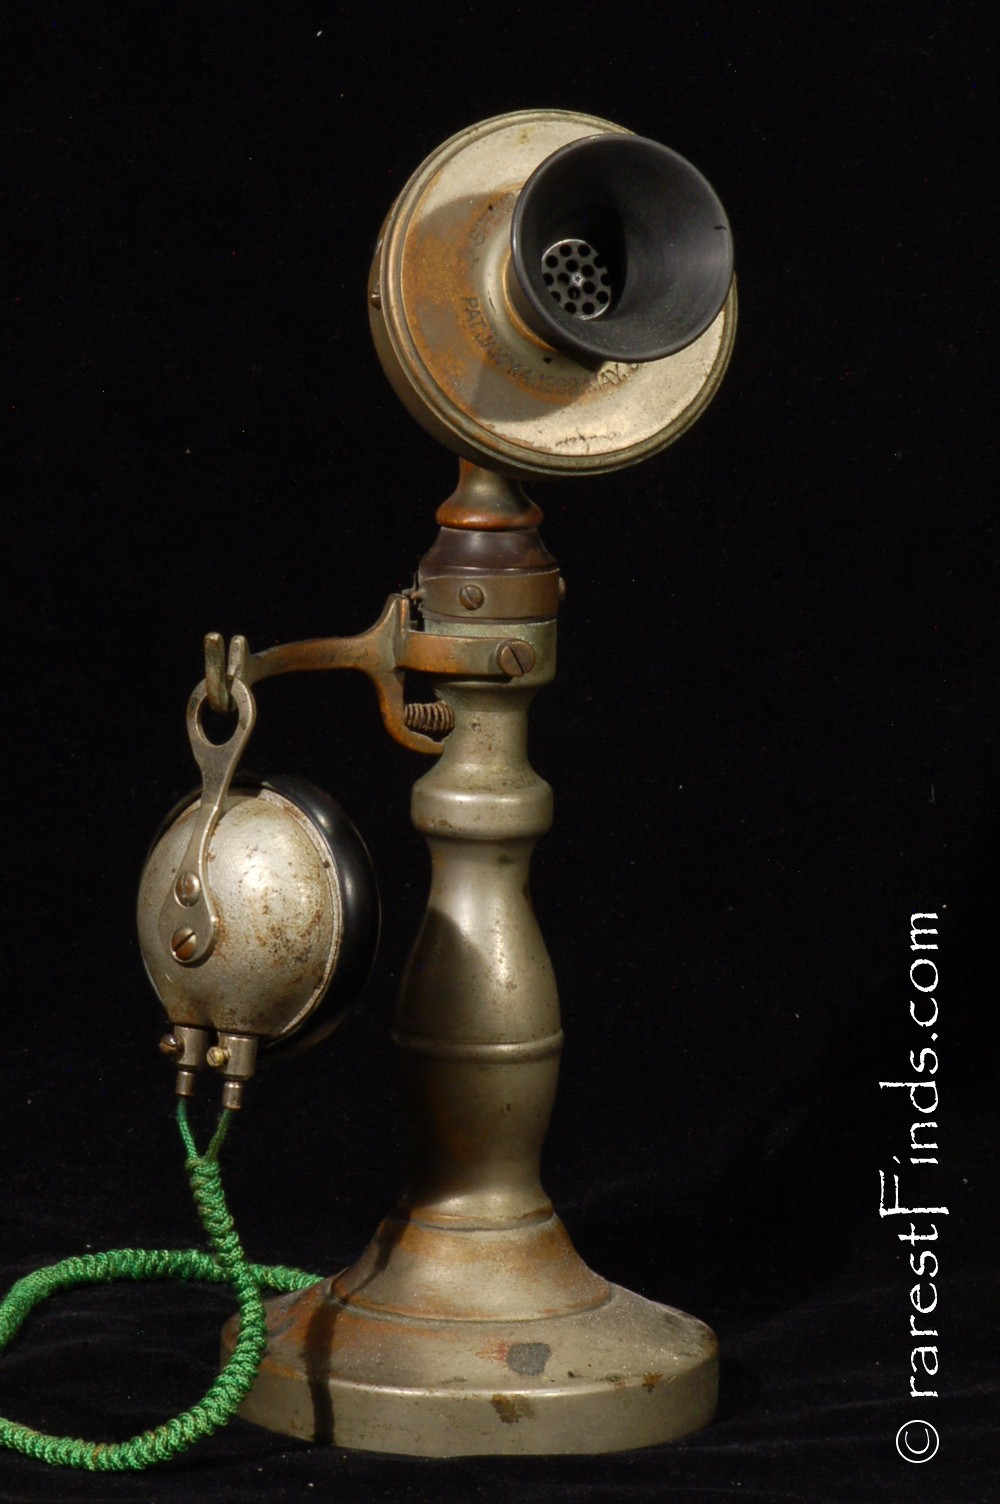 Spencer-Potbelly-Candlestick-Telephone